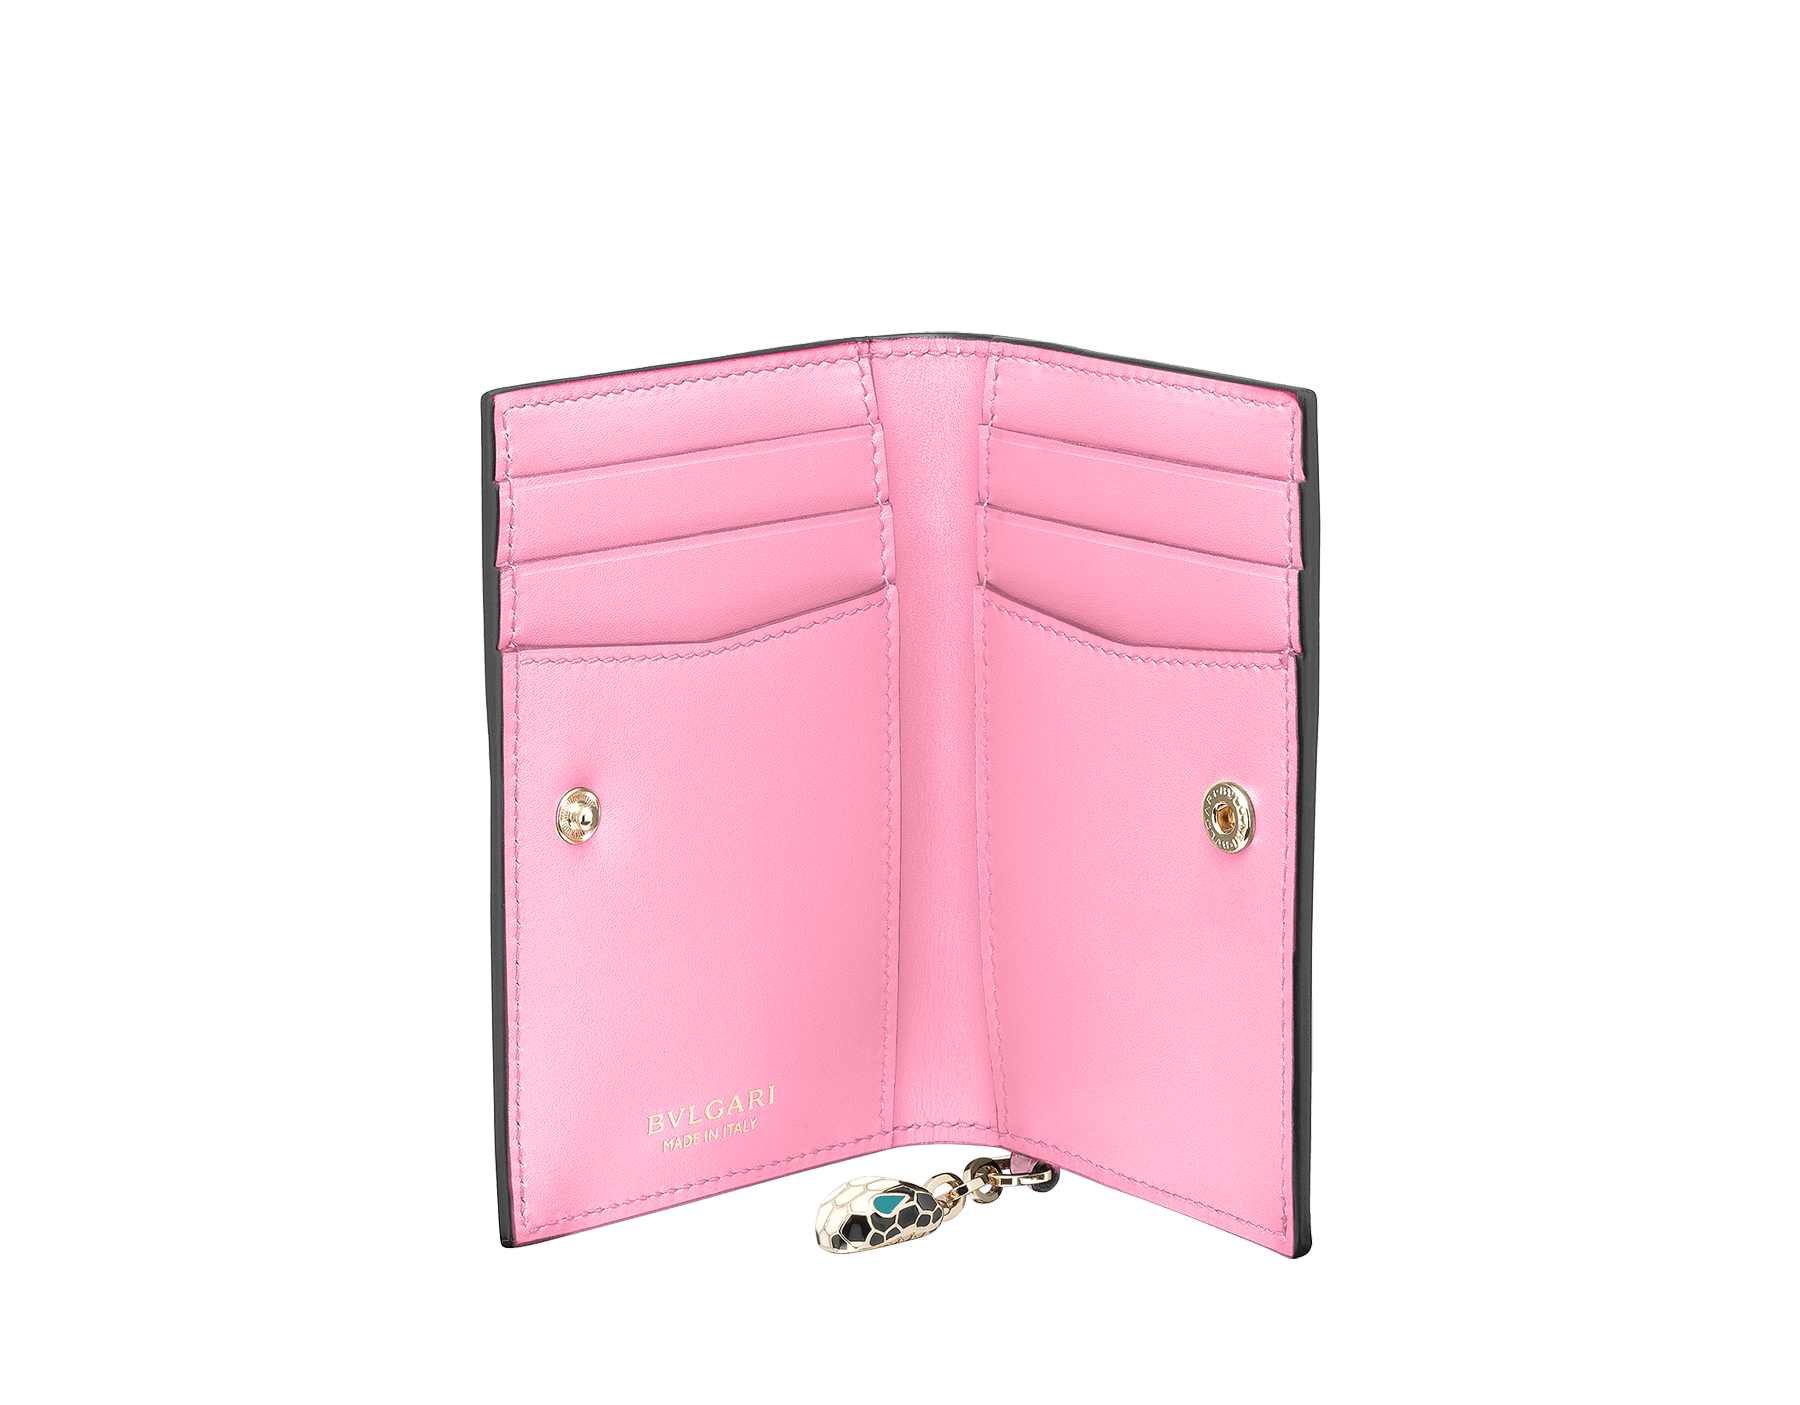 Serpenti Forever folded credit card holder in silky coral and flamingo quartz calf leather. Iconic snakehead charm in black and white enamel, with green malachite enamel eyes. 288823 image 2